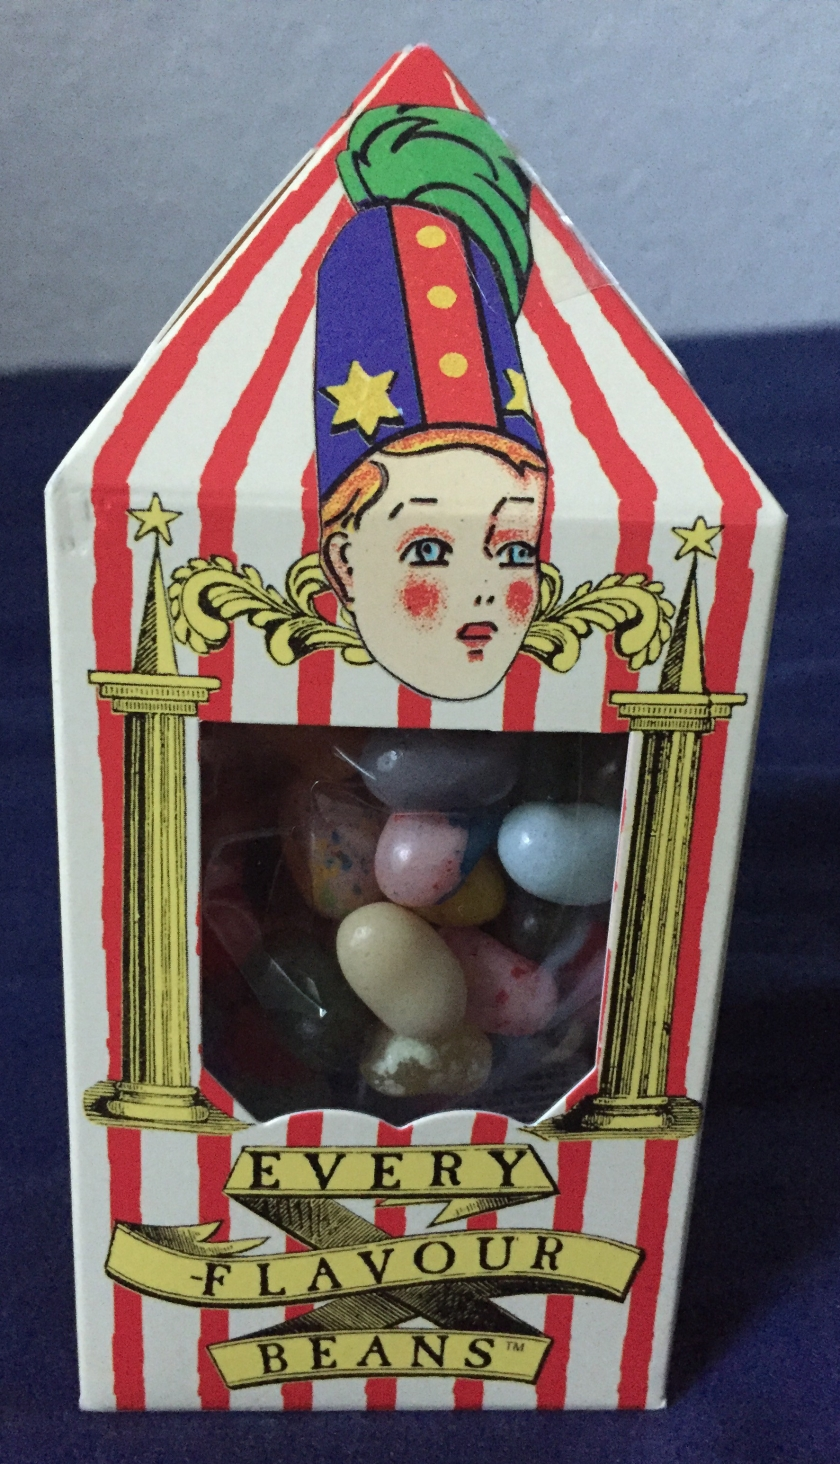 Red and white striped pack for Bertie Botts Every Flavour Beans, looking a bit like a tall, narrow circus tent. The rosy cheeked face of Bertie, wearing a tall blue and red hat, sits above the plastic window showing various different coloured beans.